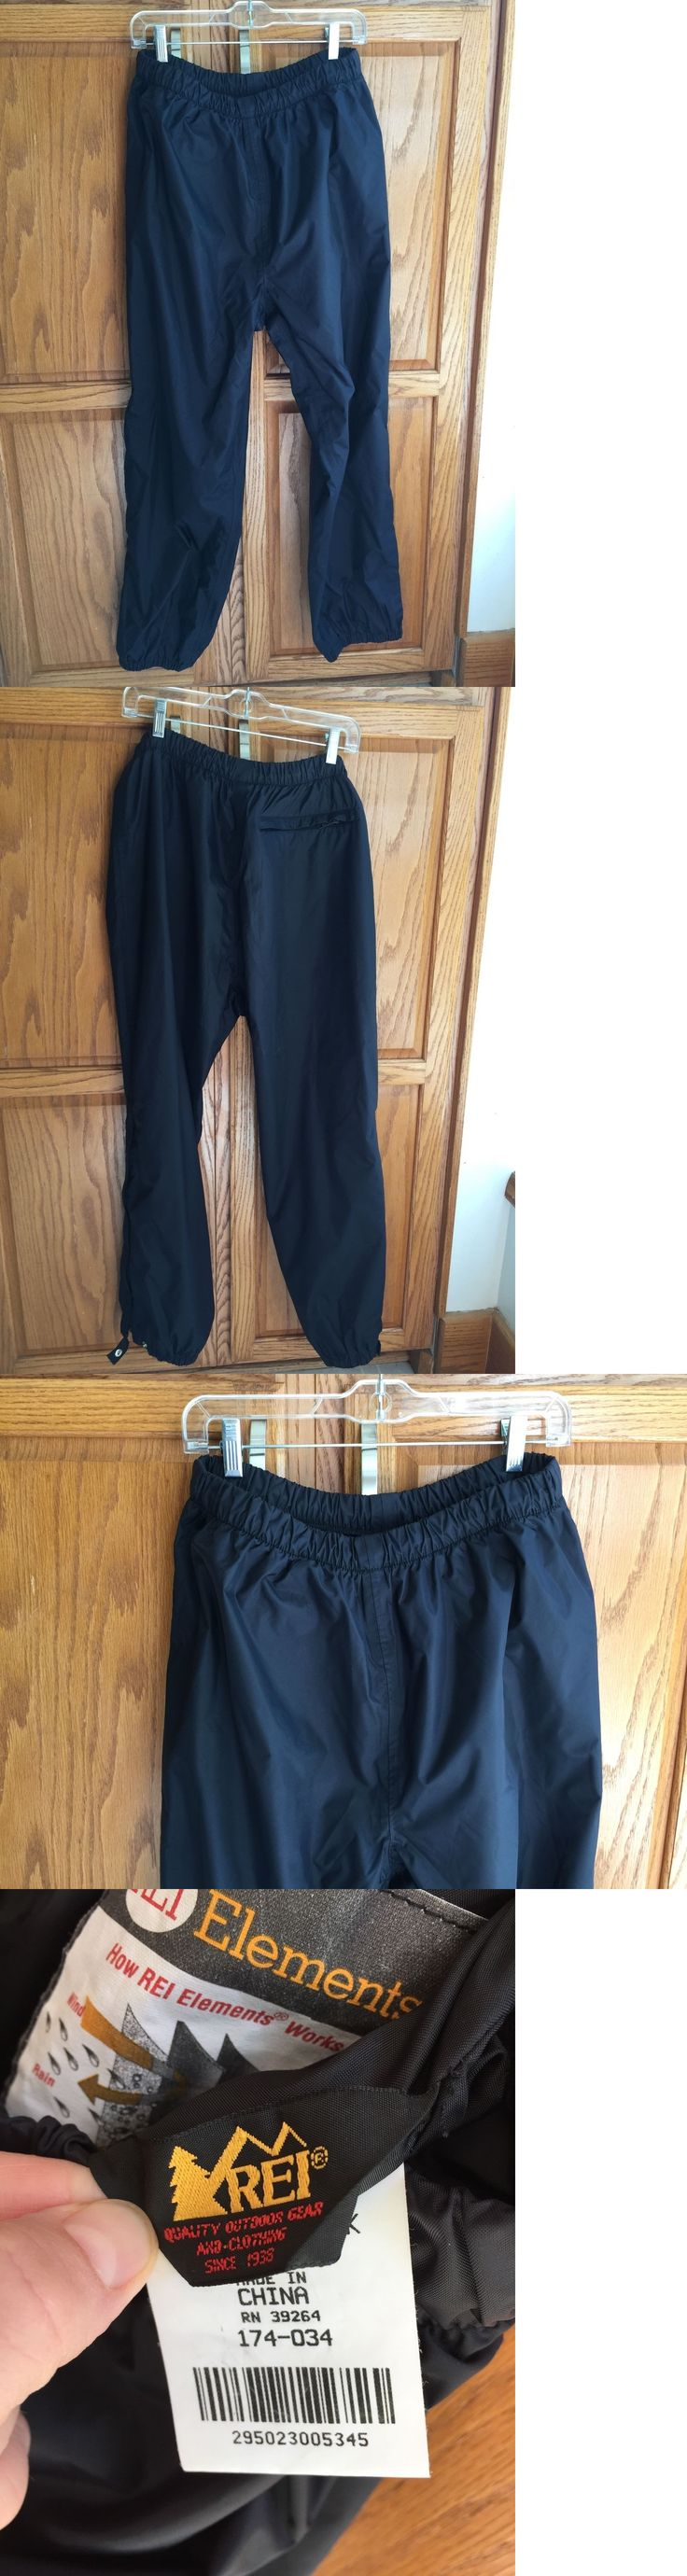 Snow Pants and Bibs 36261: Rei Elements Women S 14 Black Ski Snowpants Lightweight Snow Pant Nylon Nwot New -> BUY IT NOW ONLY: $35 on eBay!